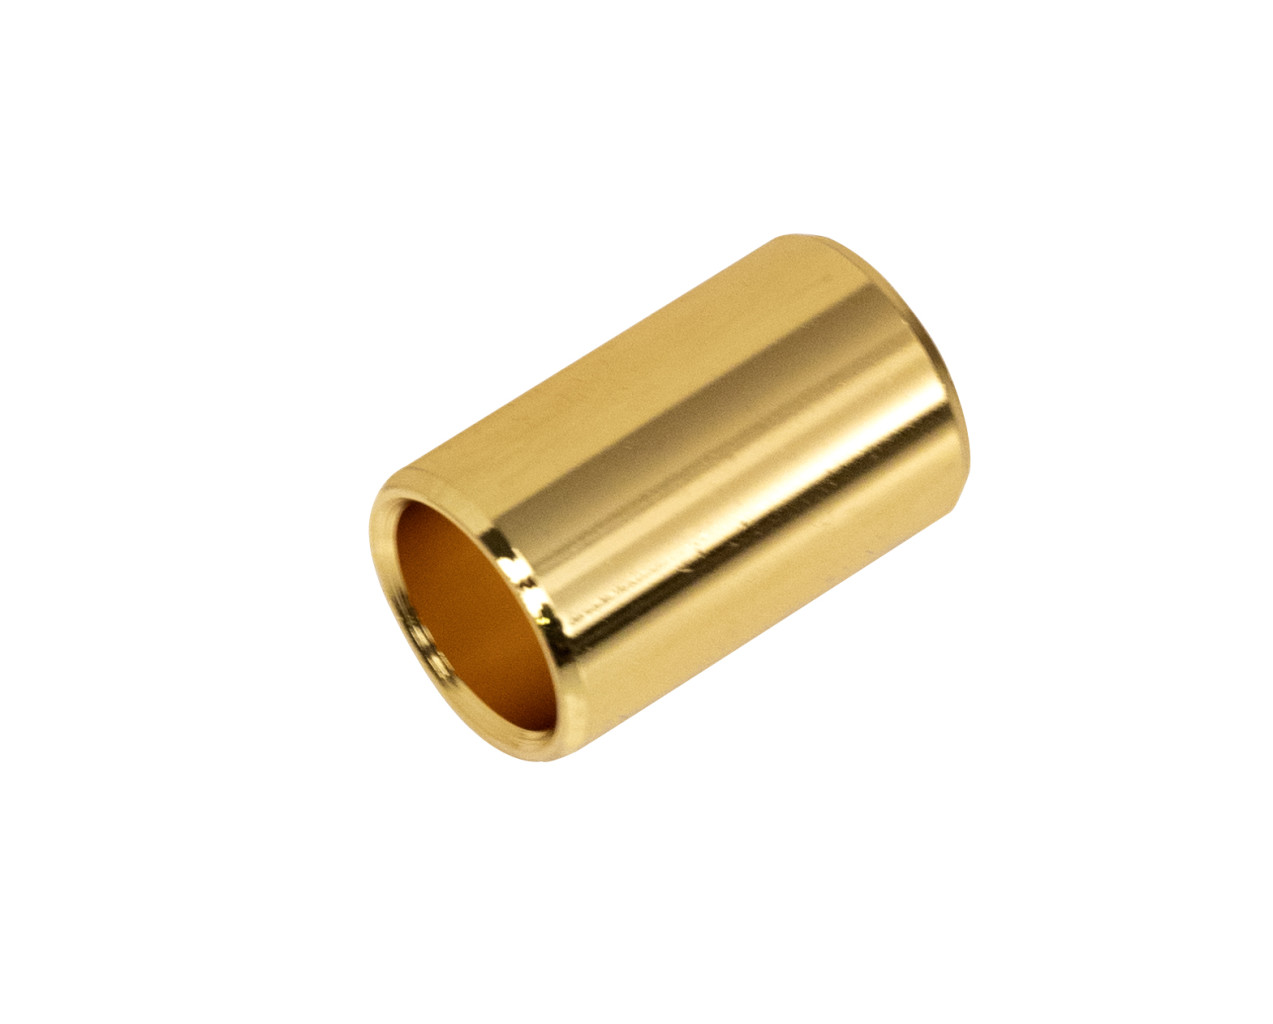 Copper slide 30-19